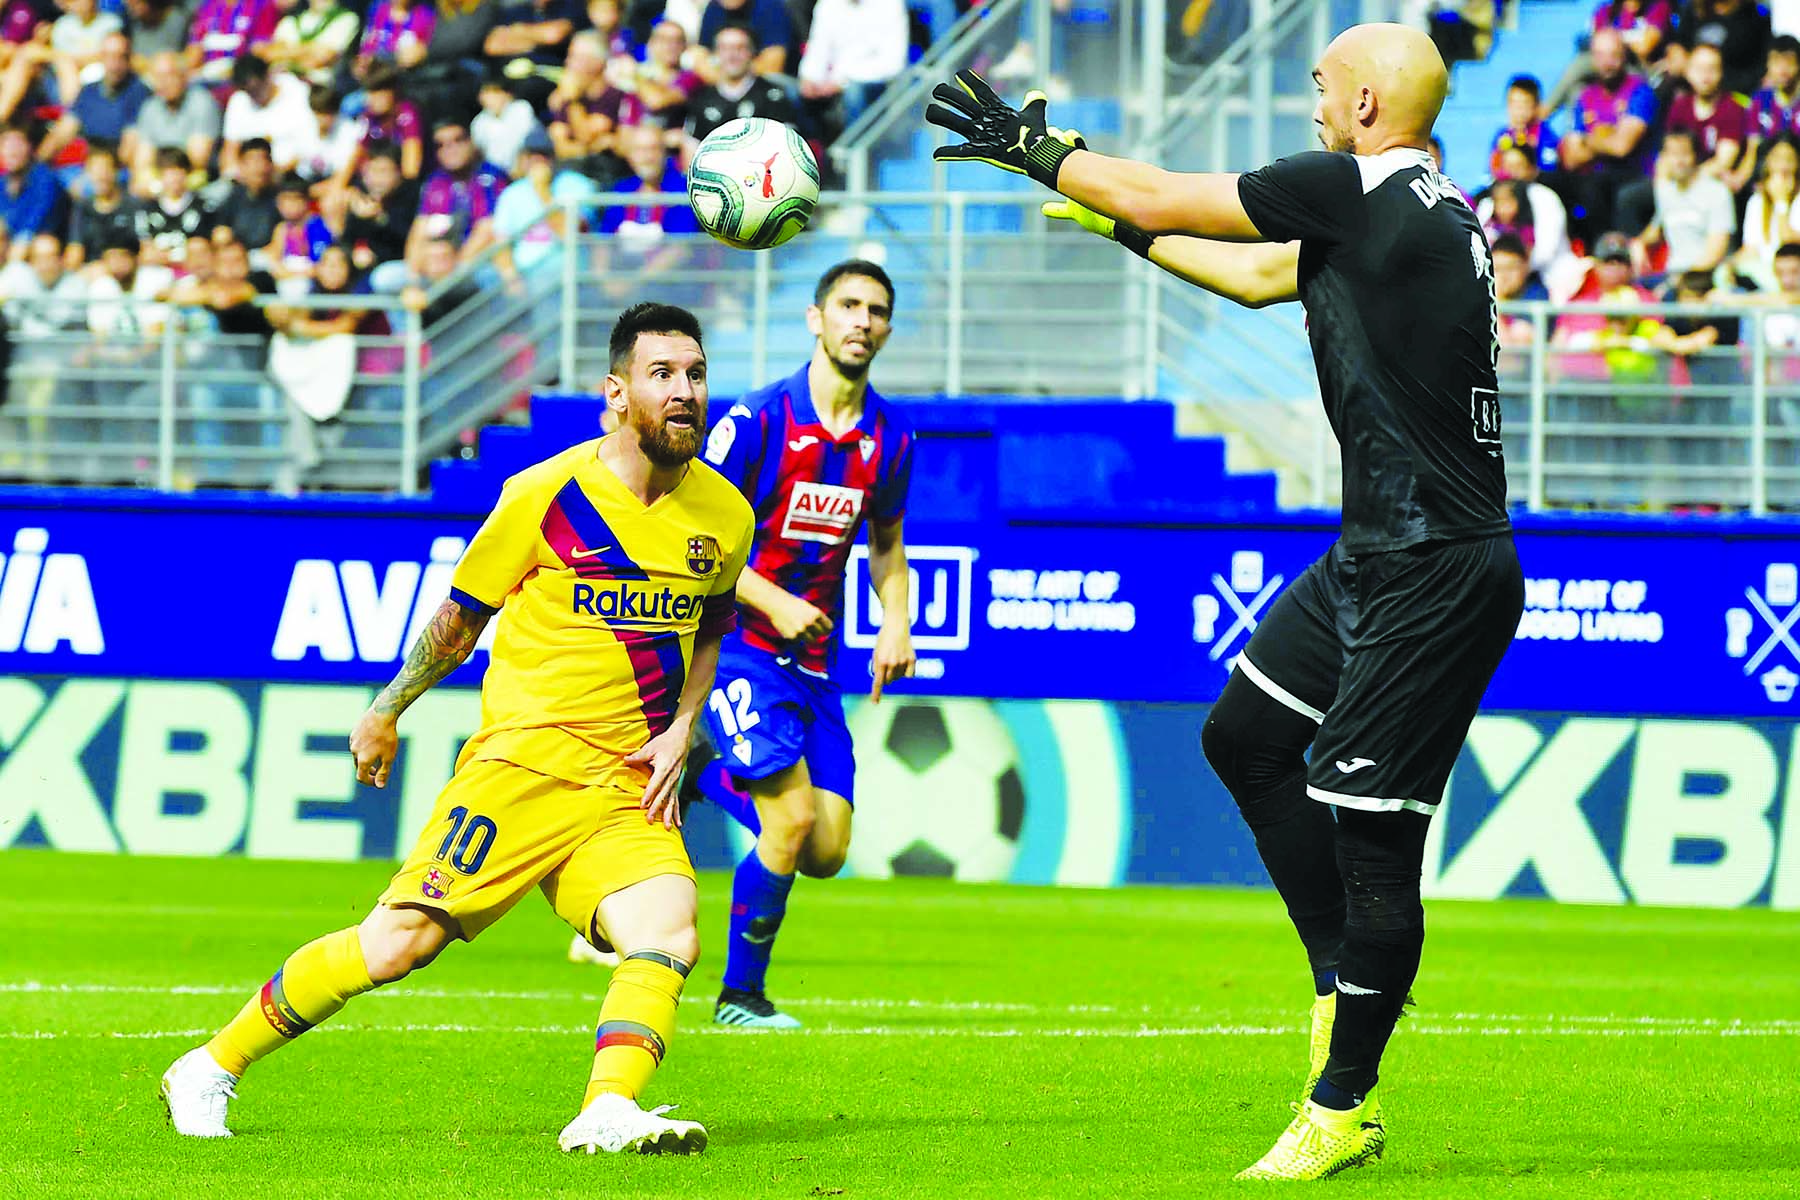 Barcelona beat Eibar 3-0 in La Liga